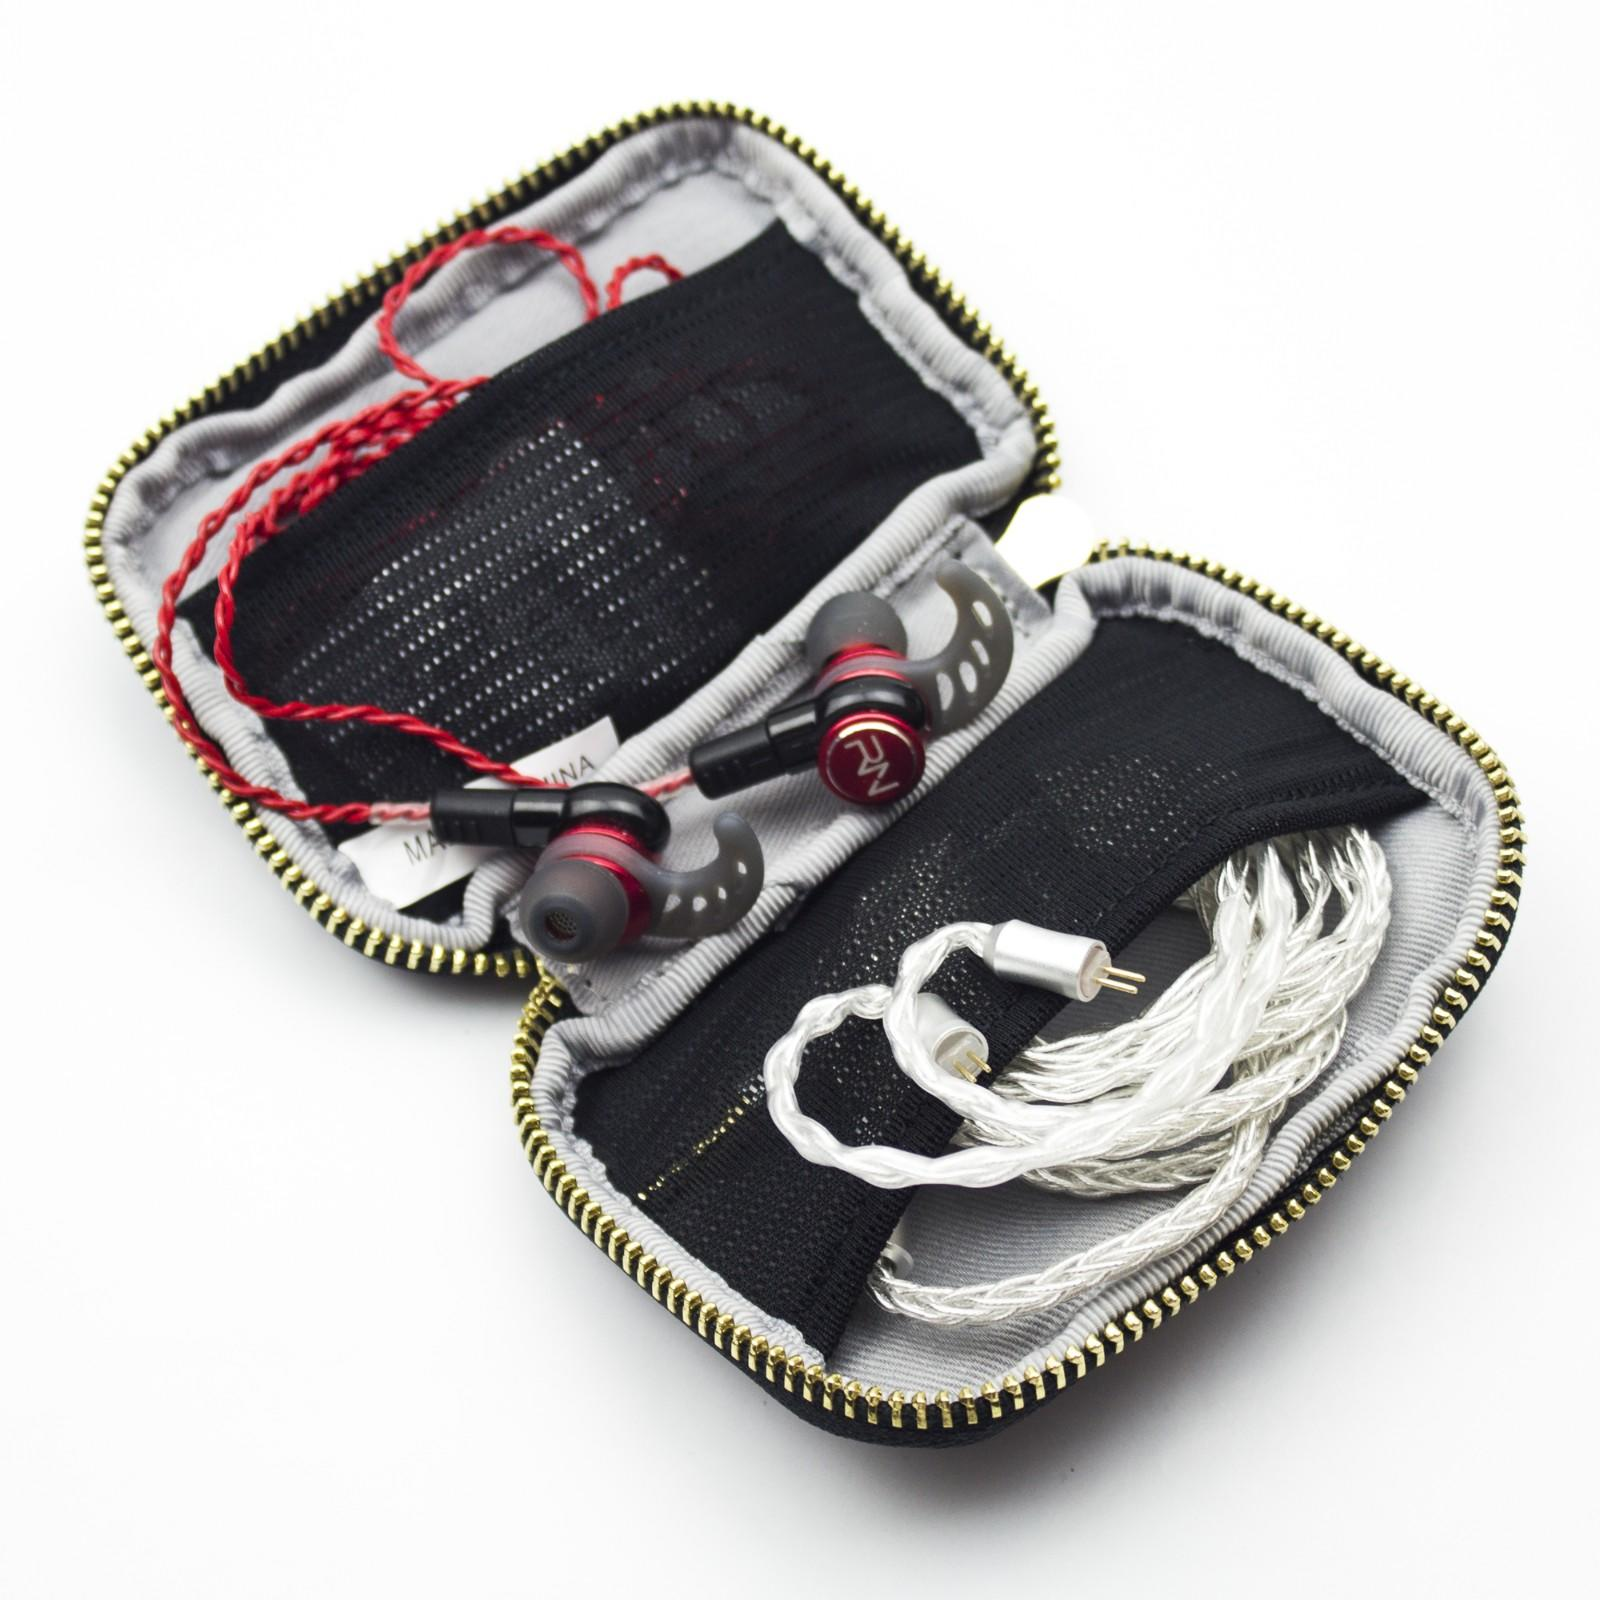 RevoNext popular carrying case for earbuds series for earbuds